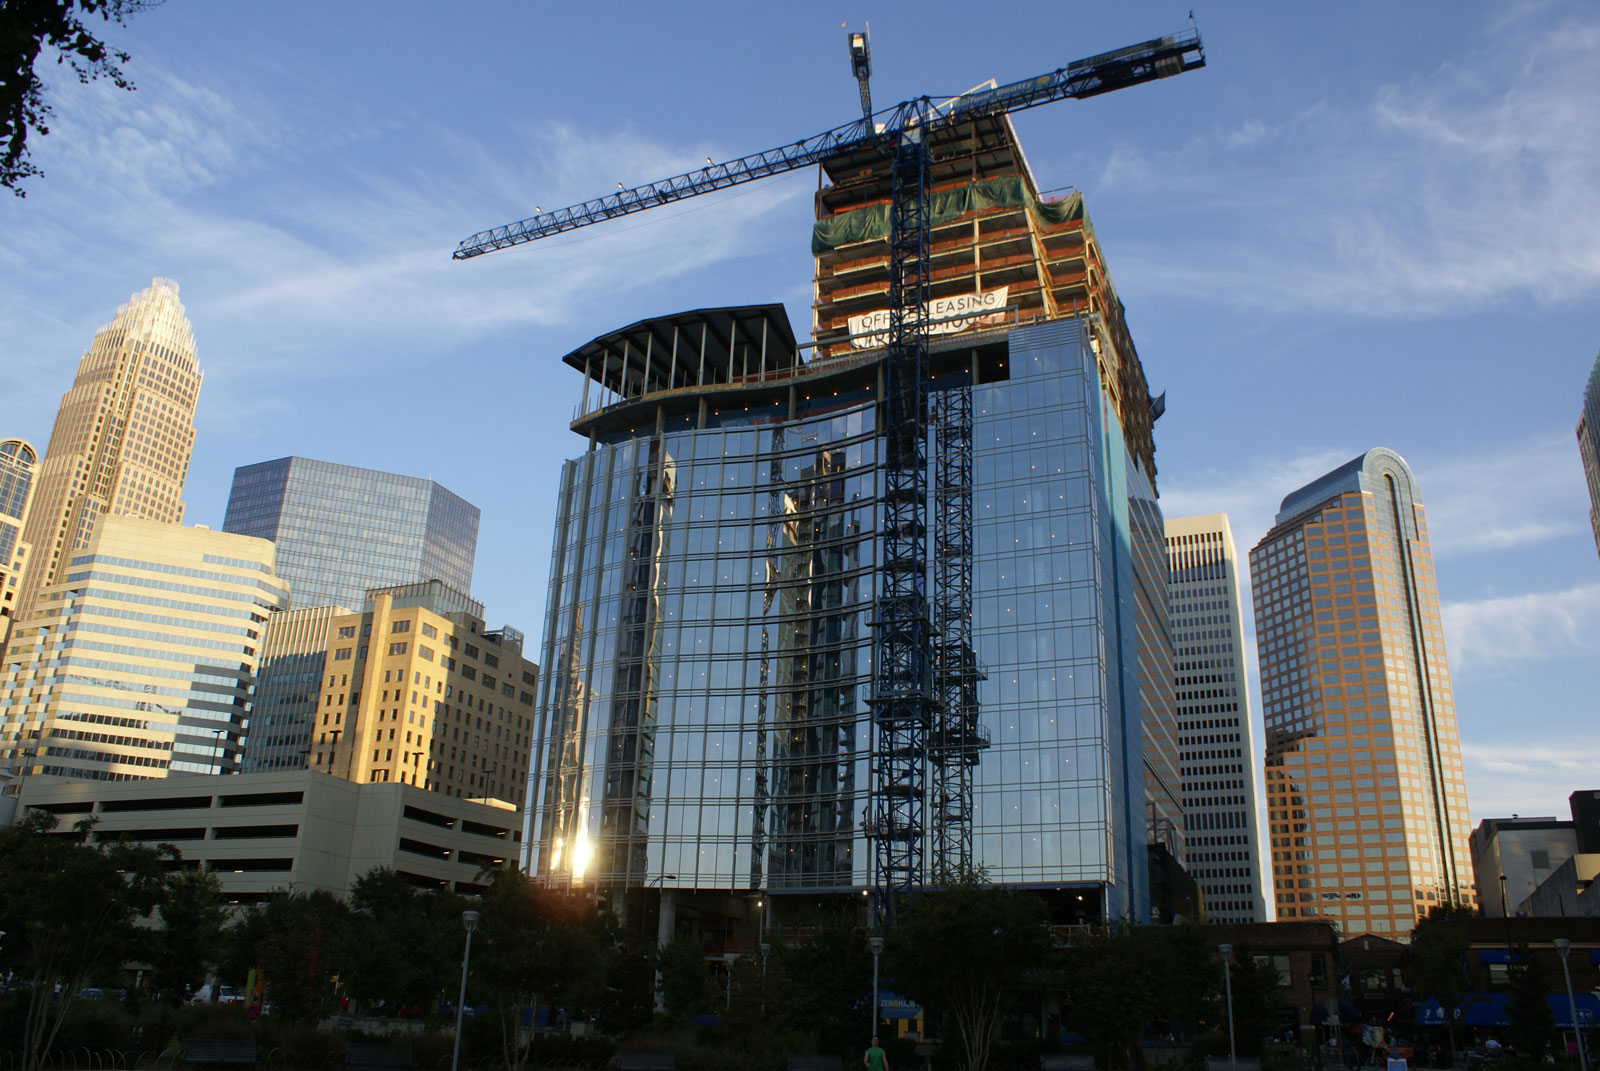 Changing skyline in Uptown Charlotte